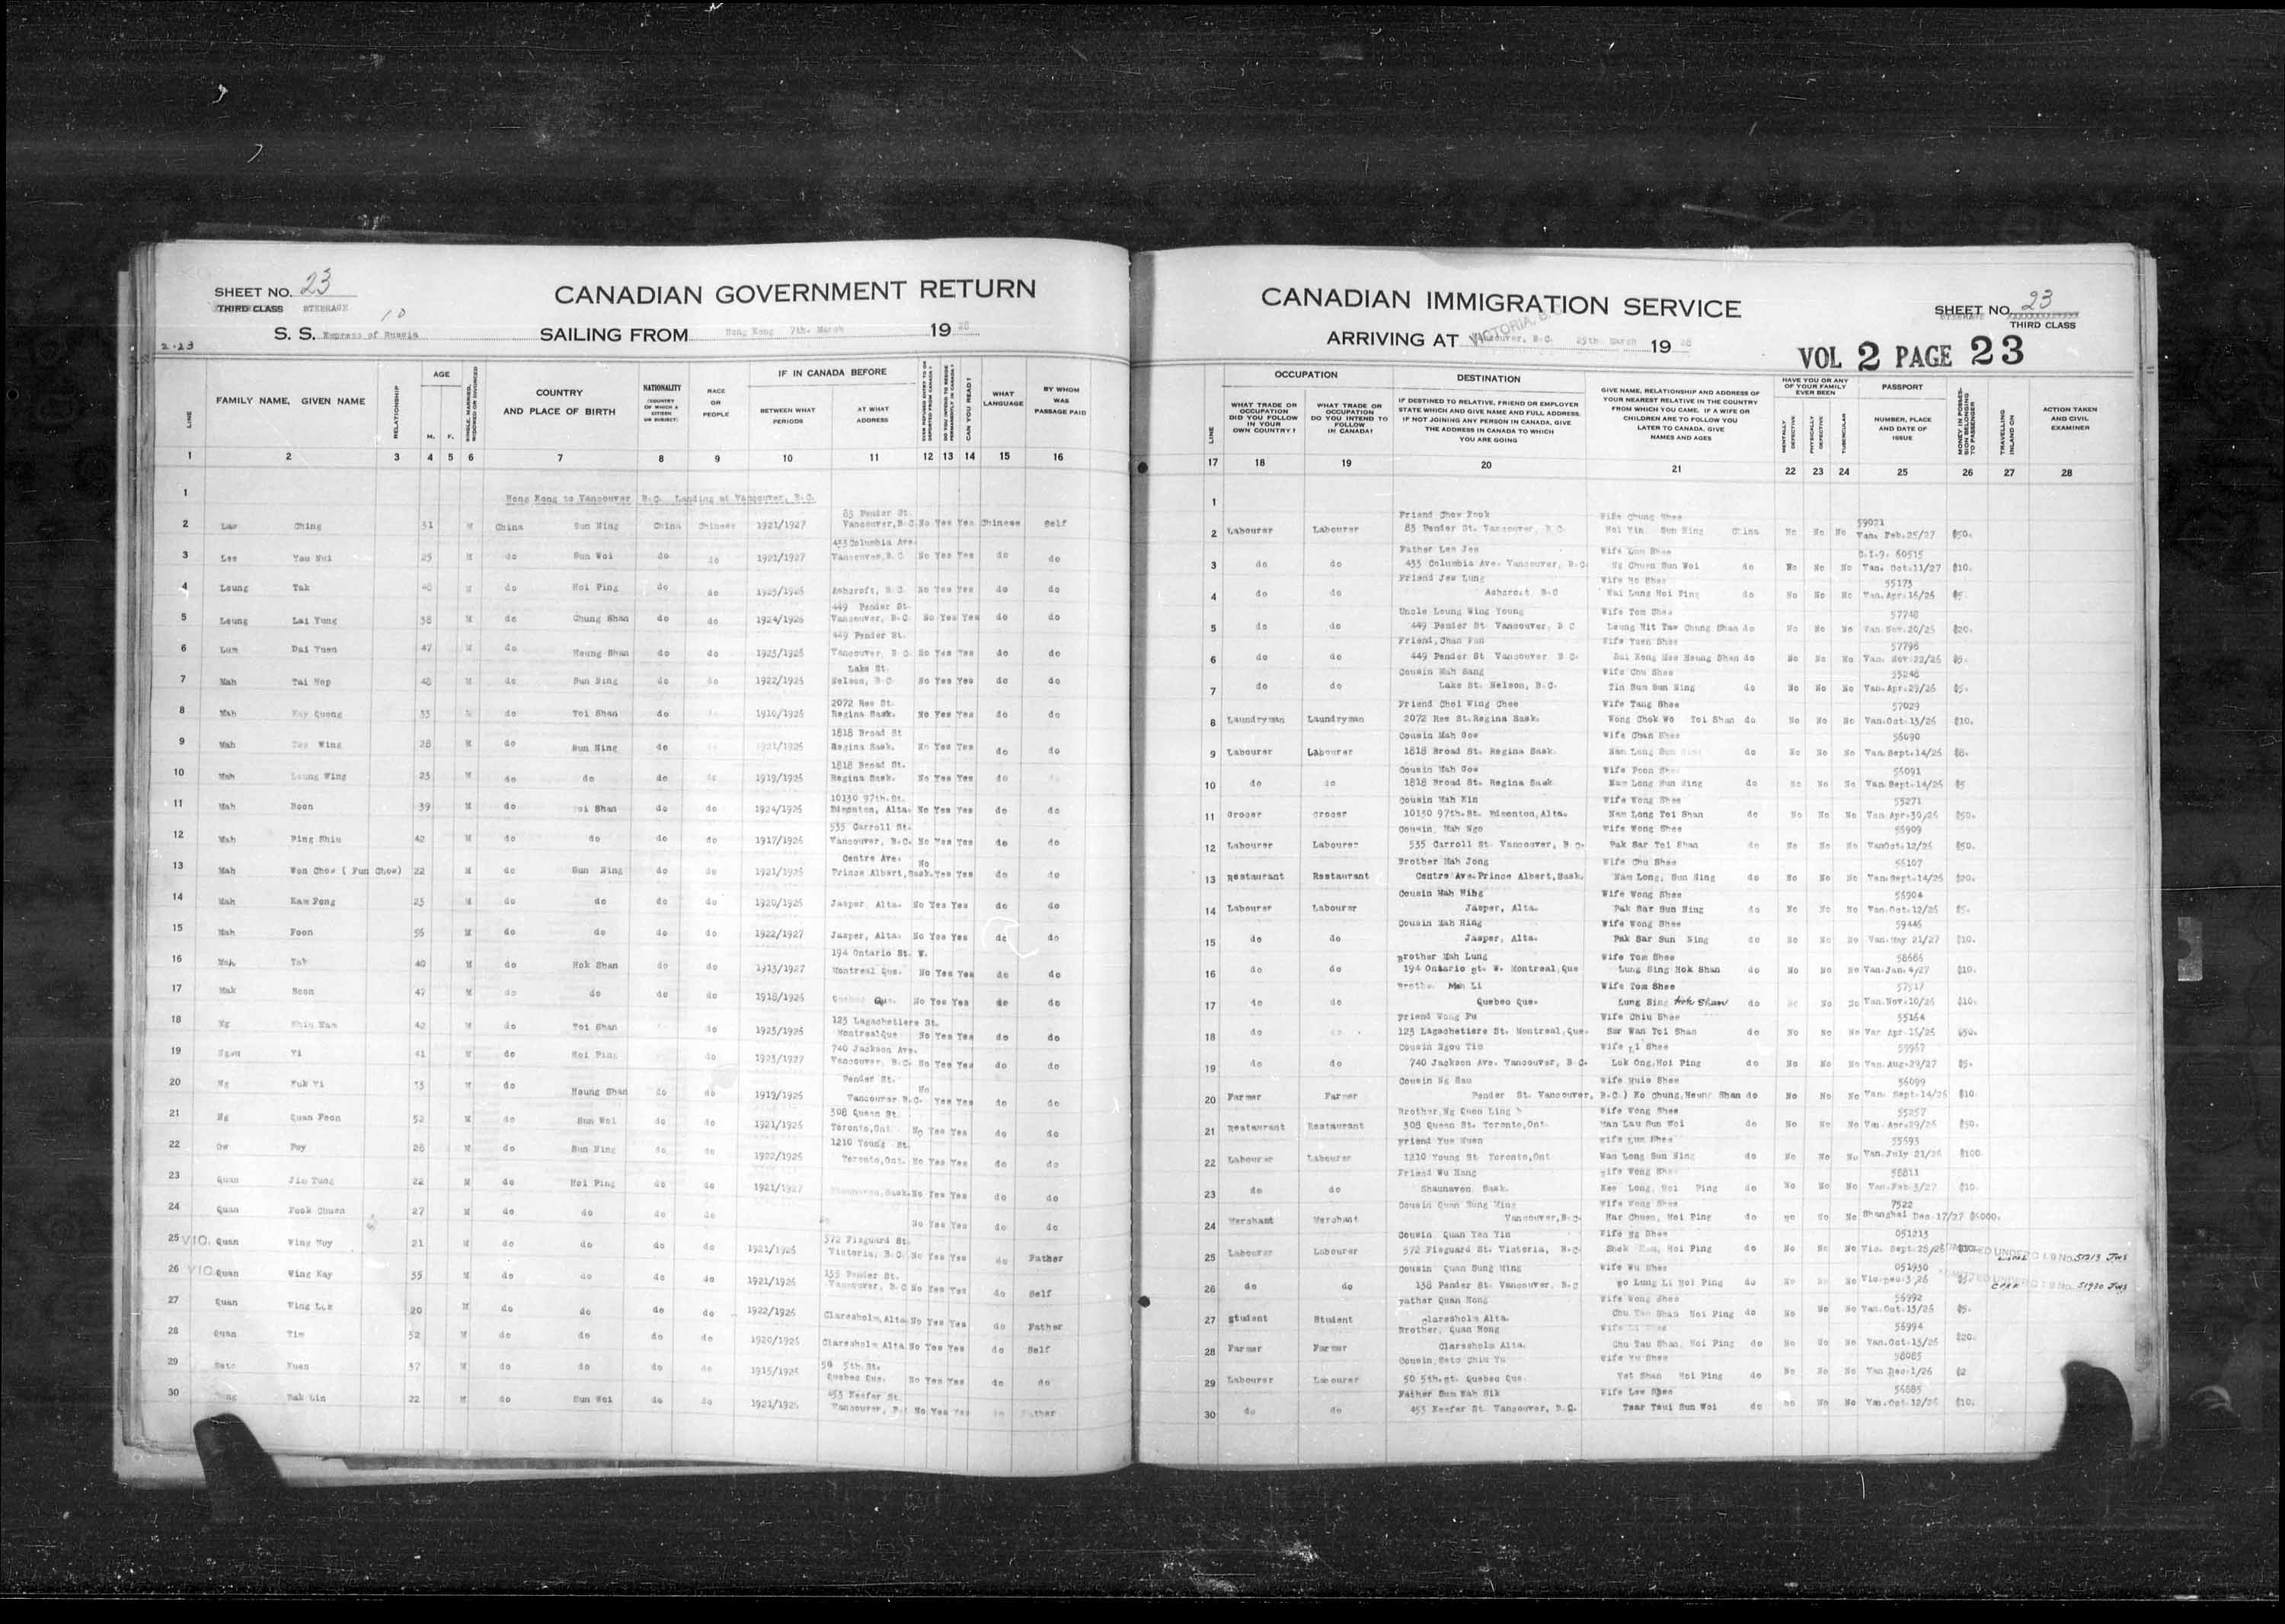 Title: Passenger Lists: Vancouver and Victoria (1925-1935) - Mikan Number: 161347 - Microform: t-14890